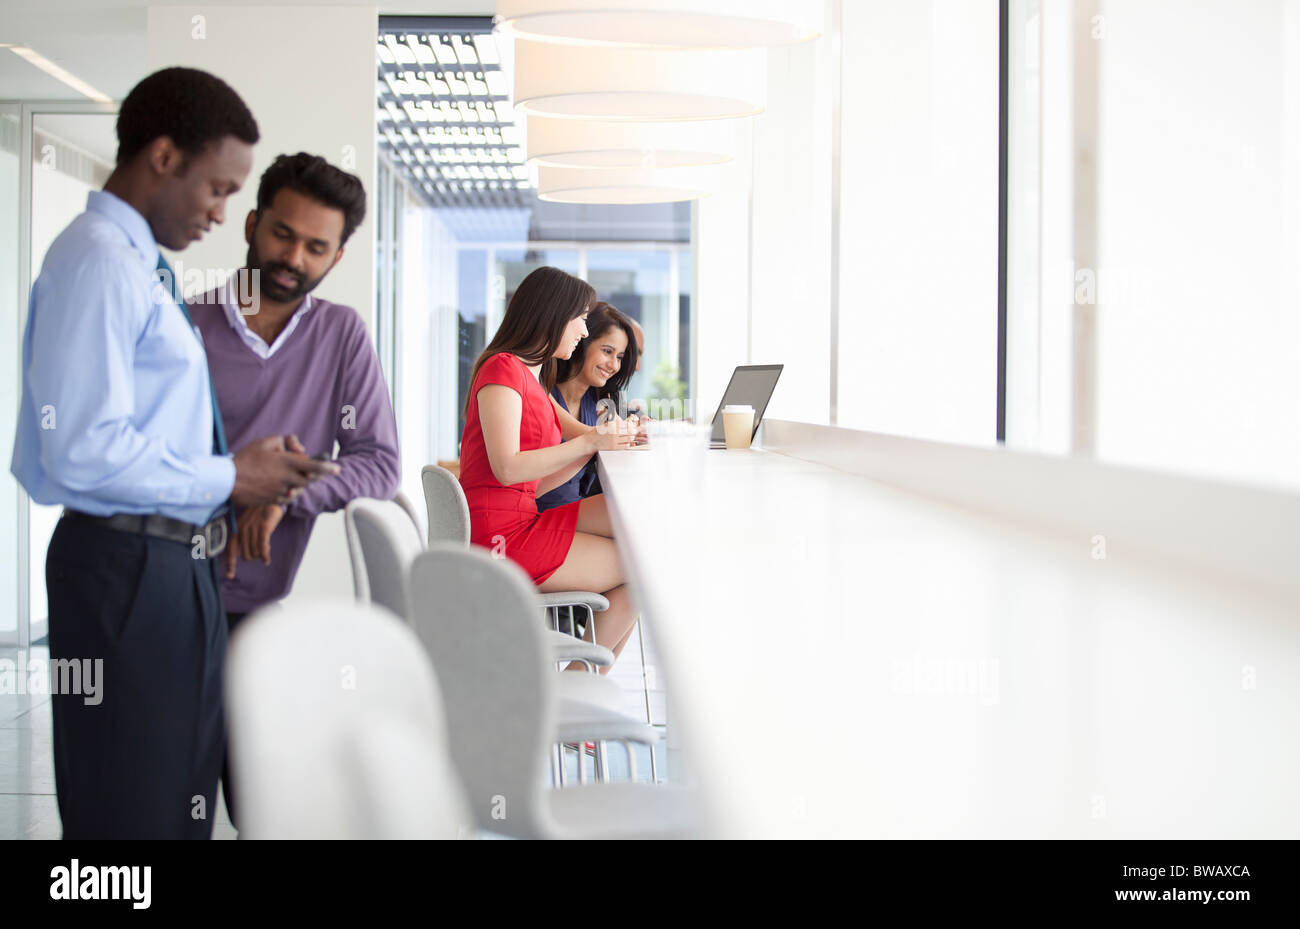 Businesspeople using mobile technology - Stock Image